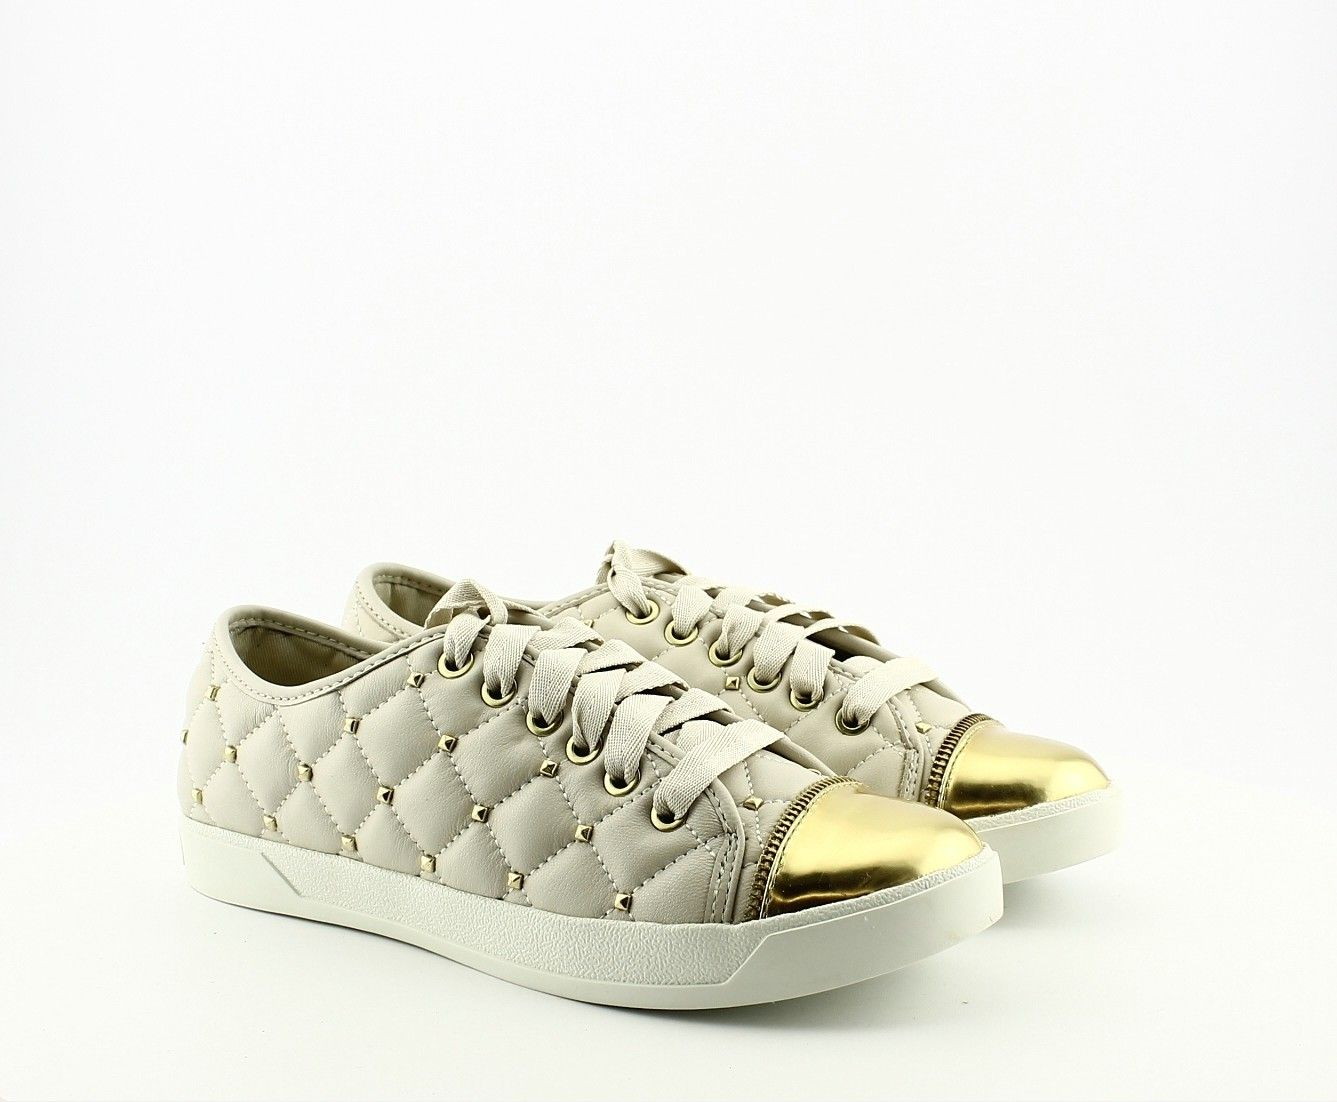 Michael Kors Sneaker MK Quilted Vanilla | Shoes <3 | Pinterest ... : michael kors quilted sneakers - Adamdwight.com